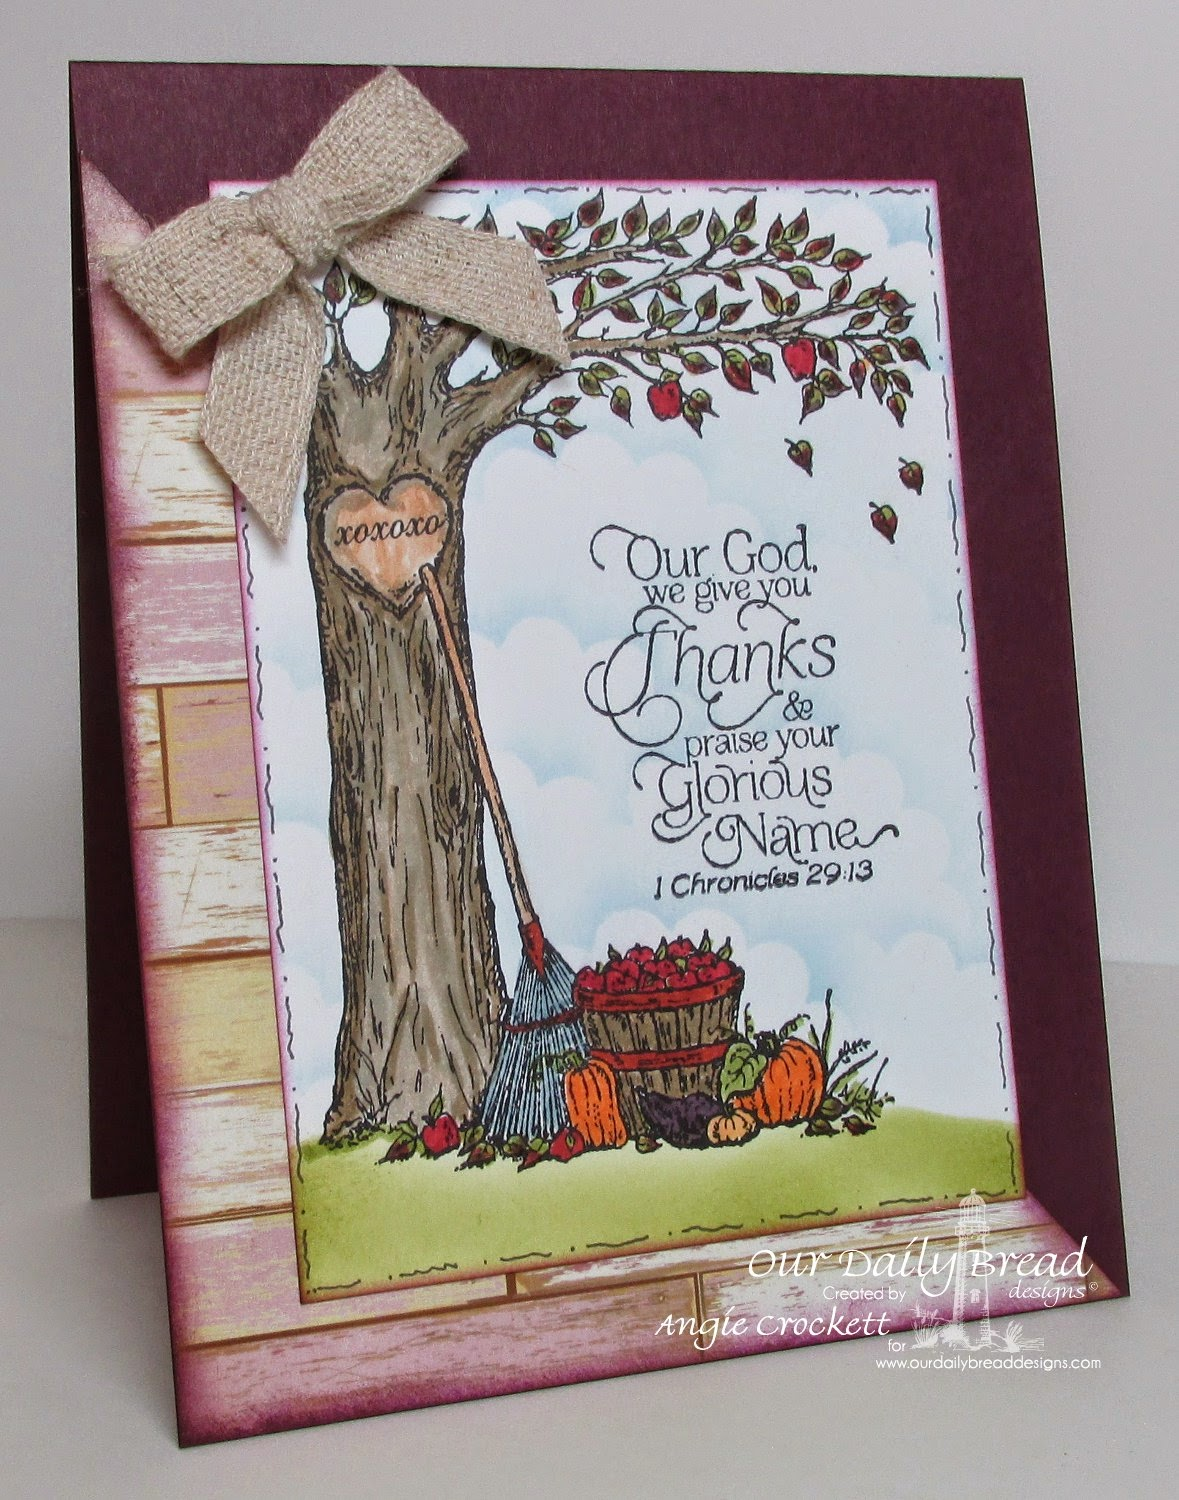 ODBD Autumn Tree, Thank You, Ornate Border Sentiments, Rustic Beauty Designer Paper, Card Designer Angie Crockett